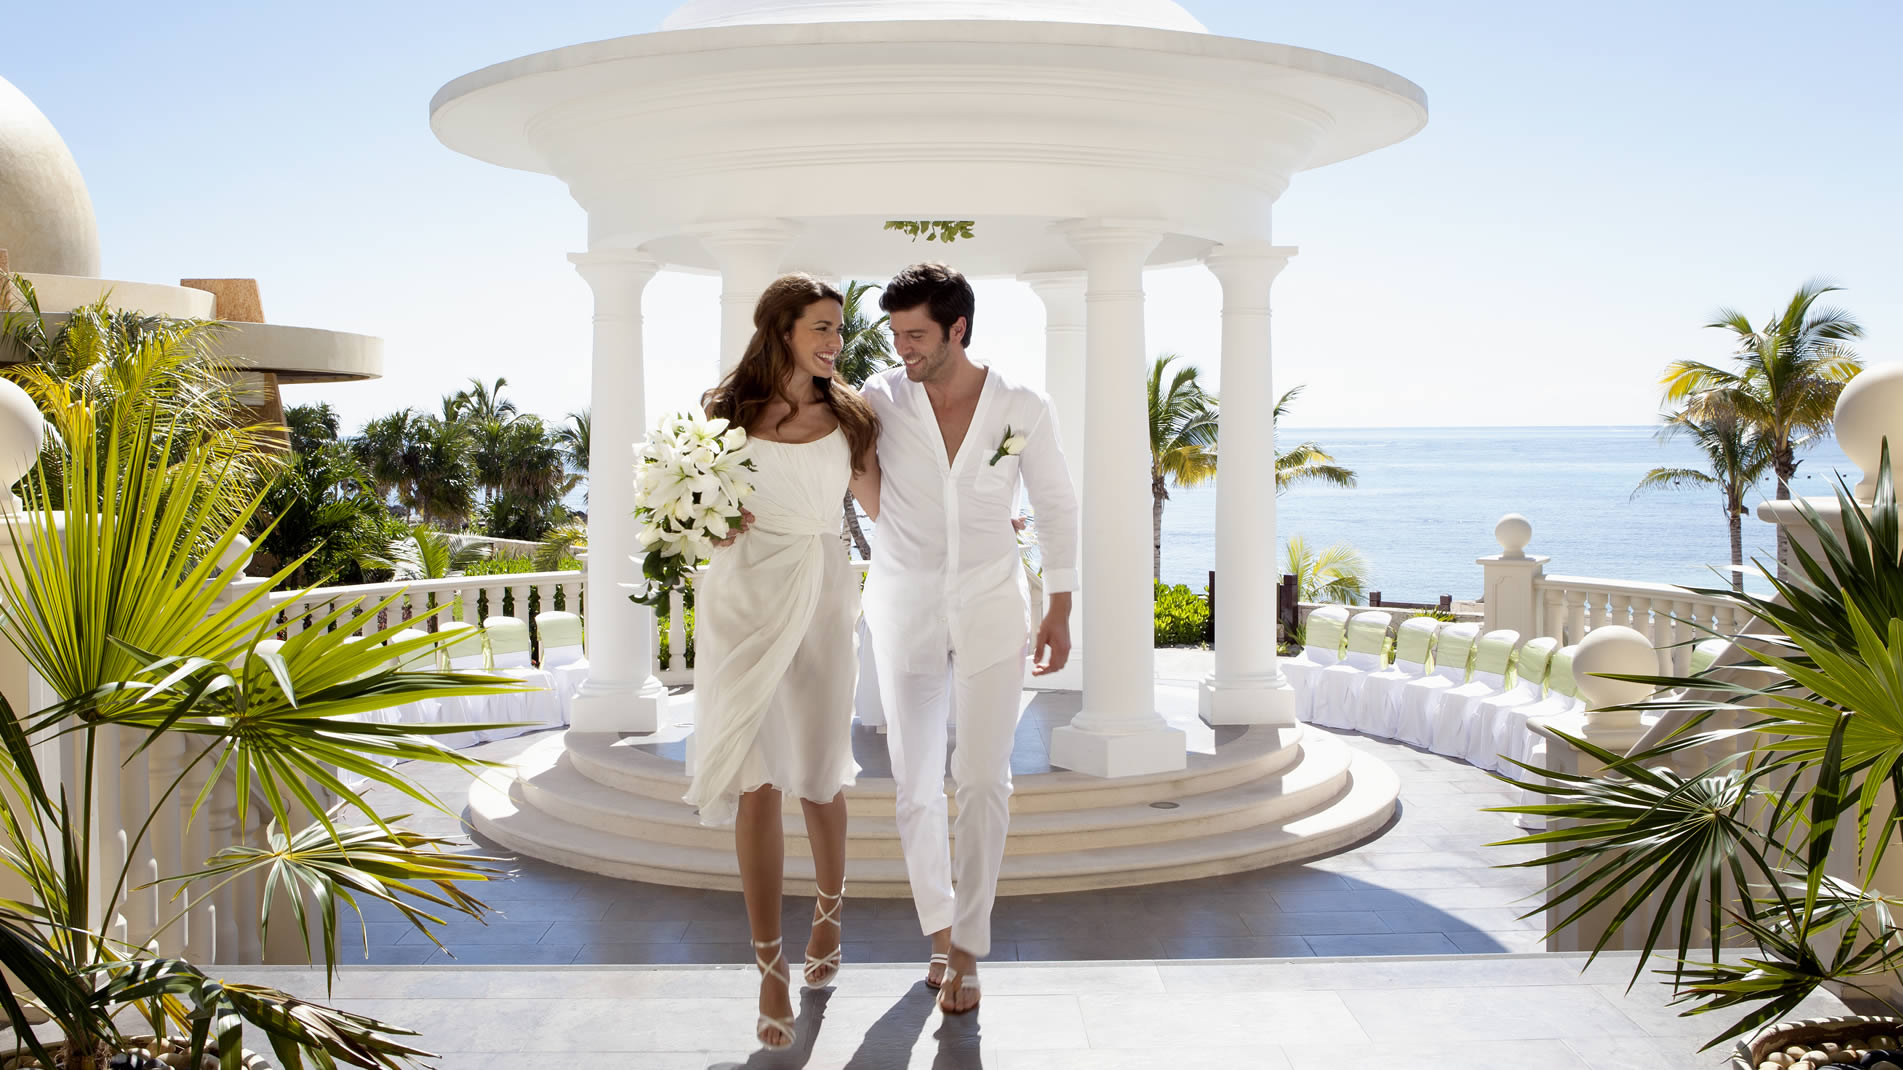 Tie the knot in a stunning destination wedding paradise in Barceló offering 4 wedding packages as well as Catholic, and exotic Indian weddings.